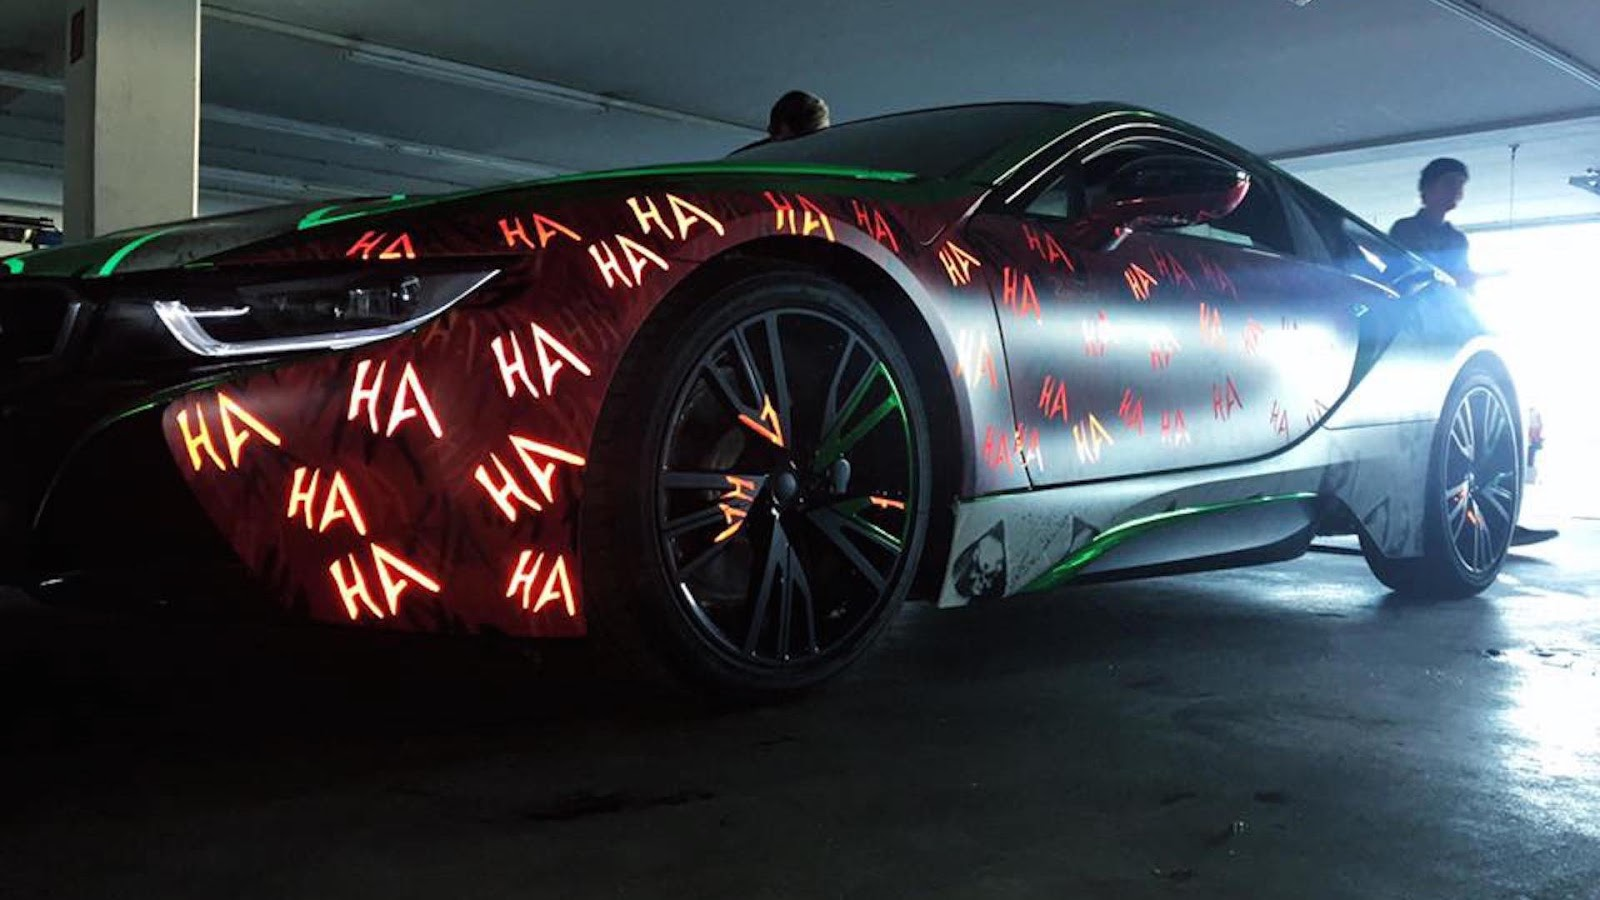 Joker-Inspired BMW i8 Is A Real Head Turner